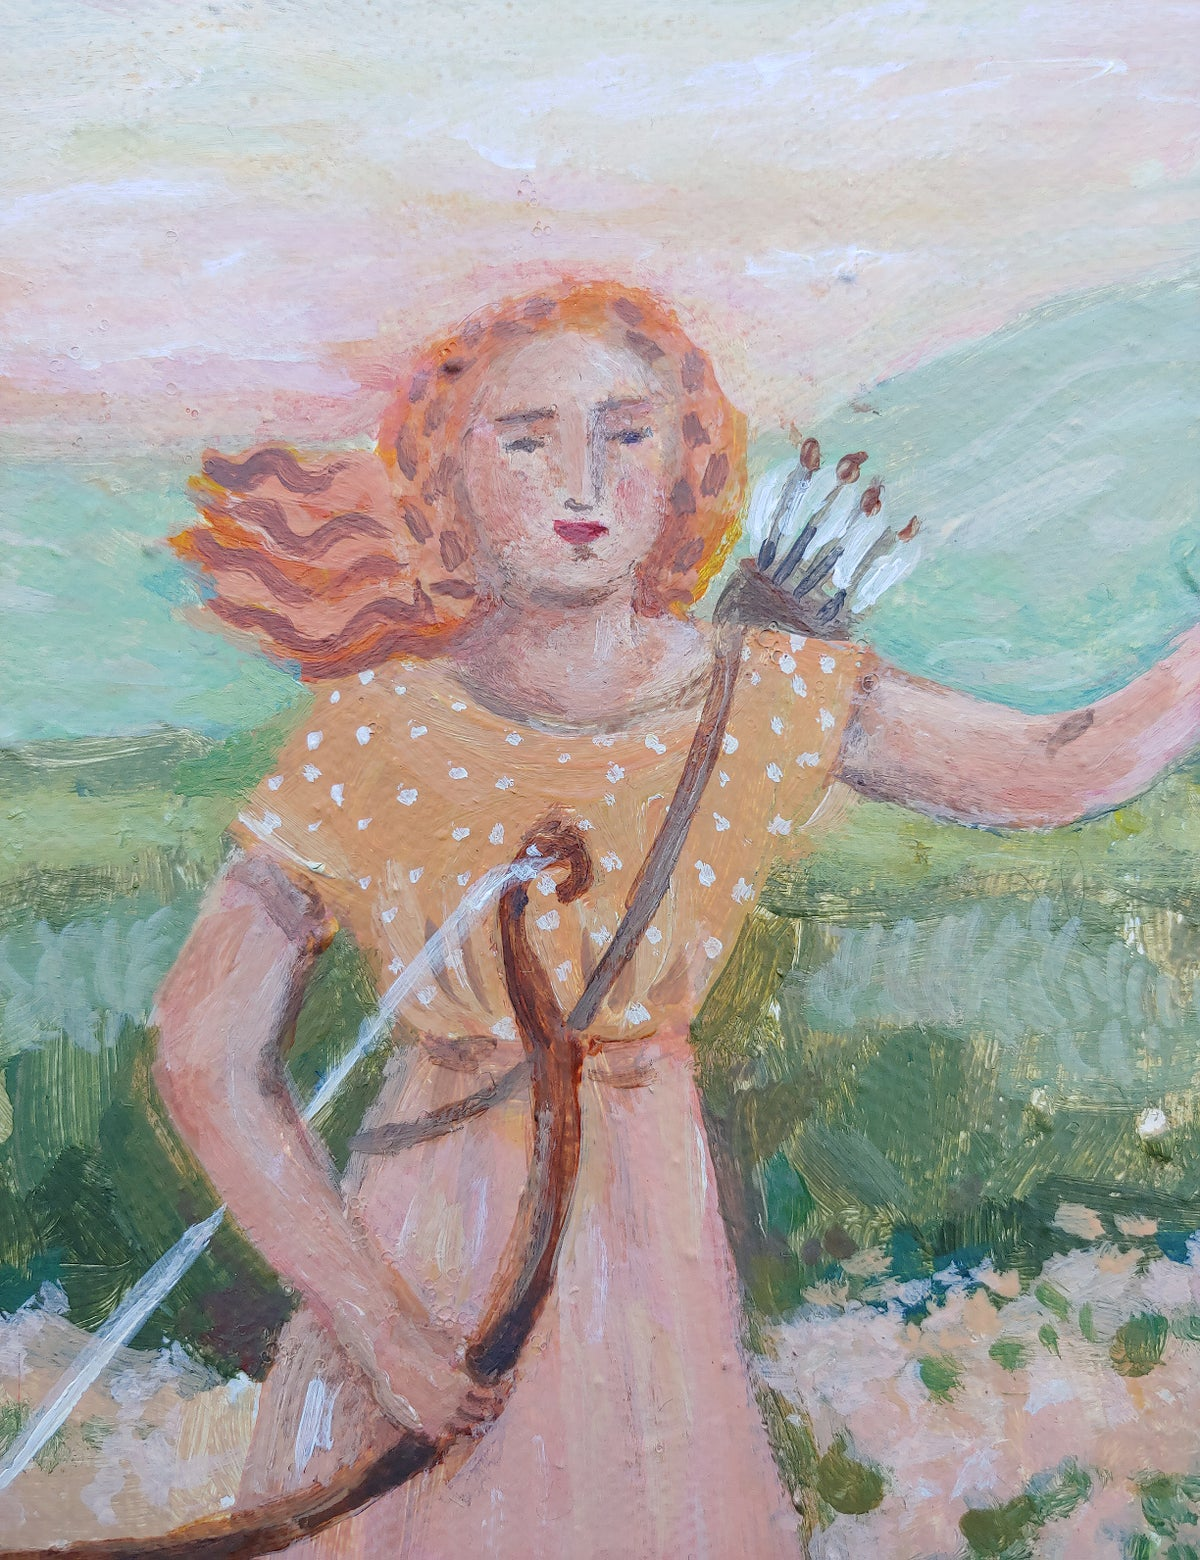 Image of Lady Falconer | 8x10 Original painting on canvas